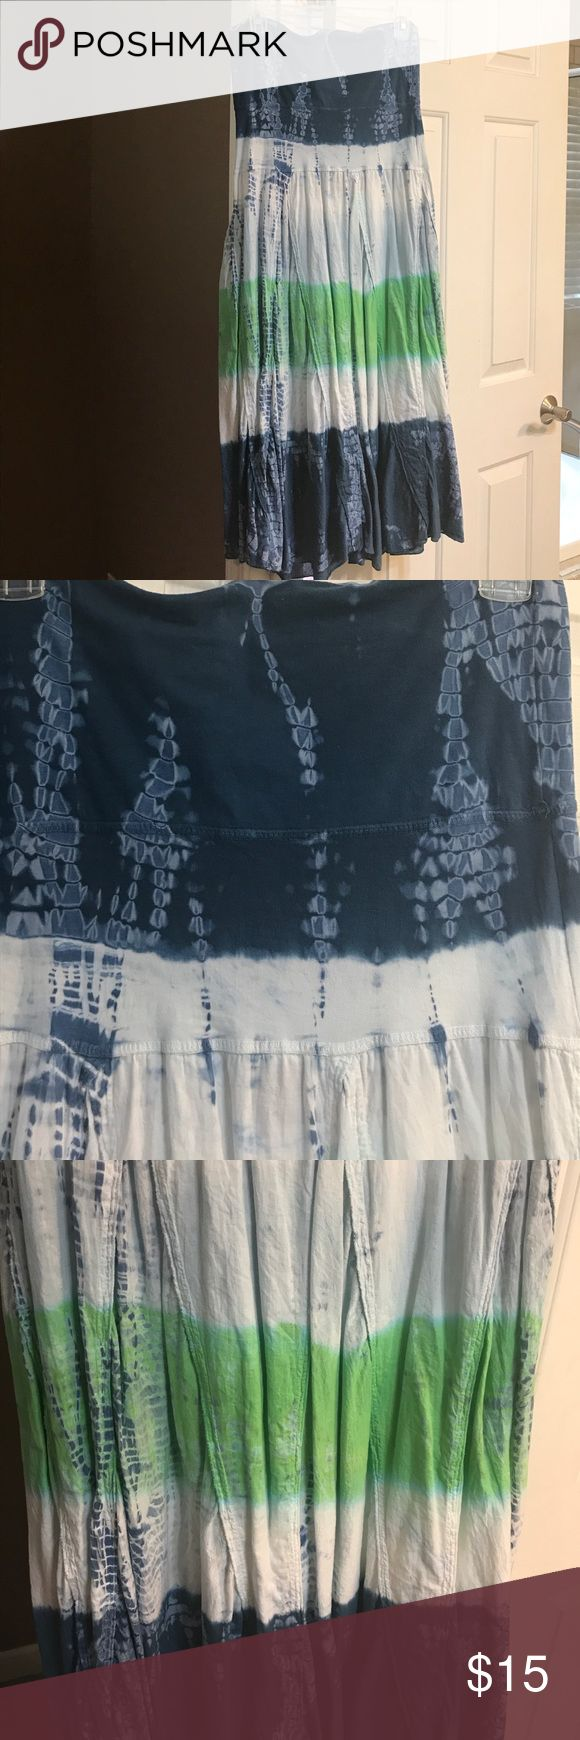 Boho Tie Dye Skirt Cute Boho tie dyed skirt with wide waist band that folds over.. Dark blue, pale blue and green.. I'm 5'6 with band folded over comes to my ankle.. gently used condition.. nonsmoking home.. please message me with any additional questions😊 Tracy Evans Skirts